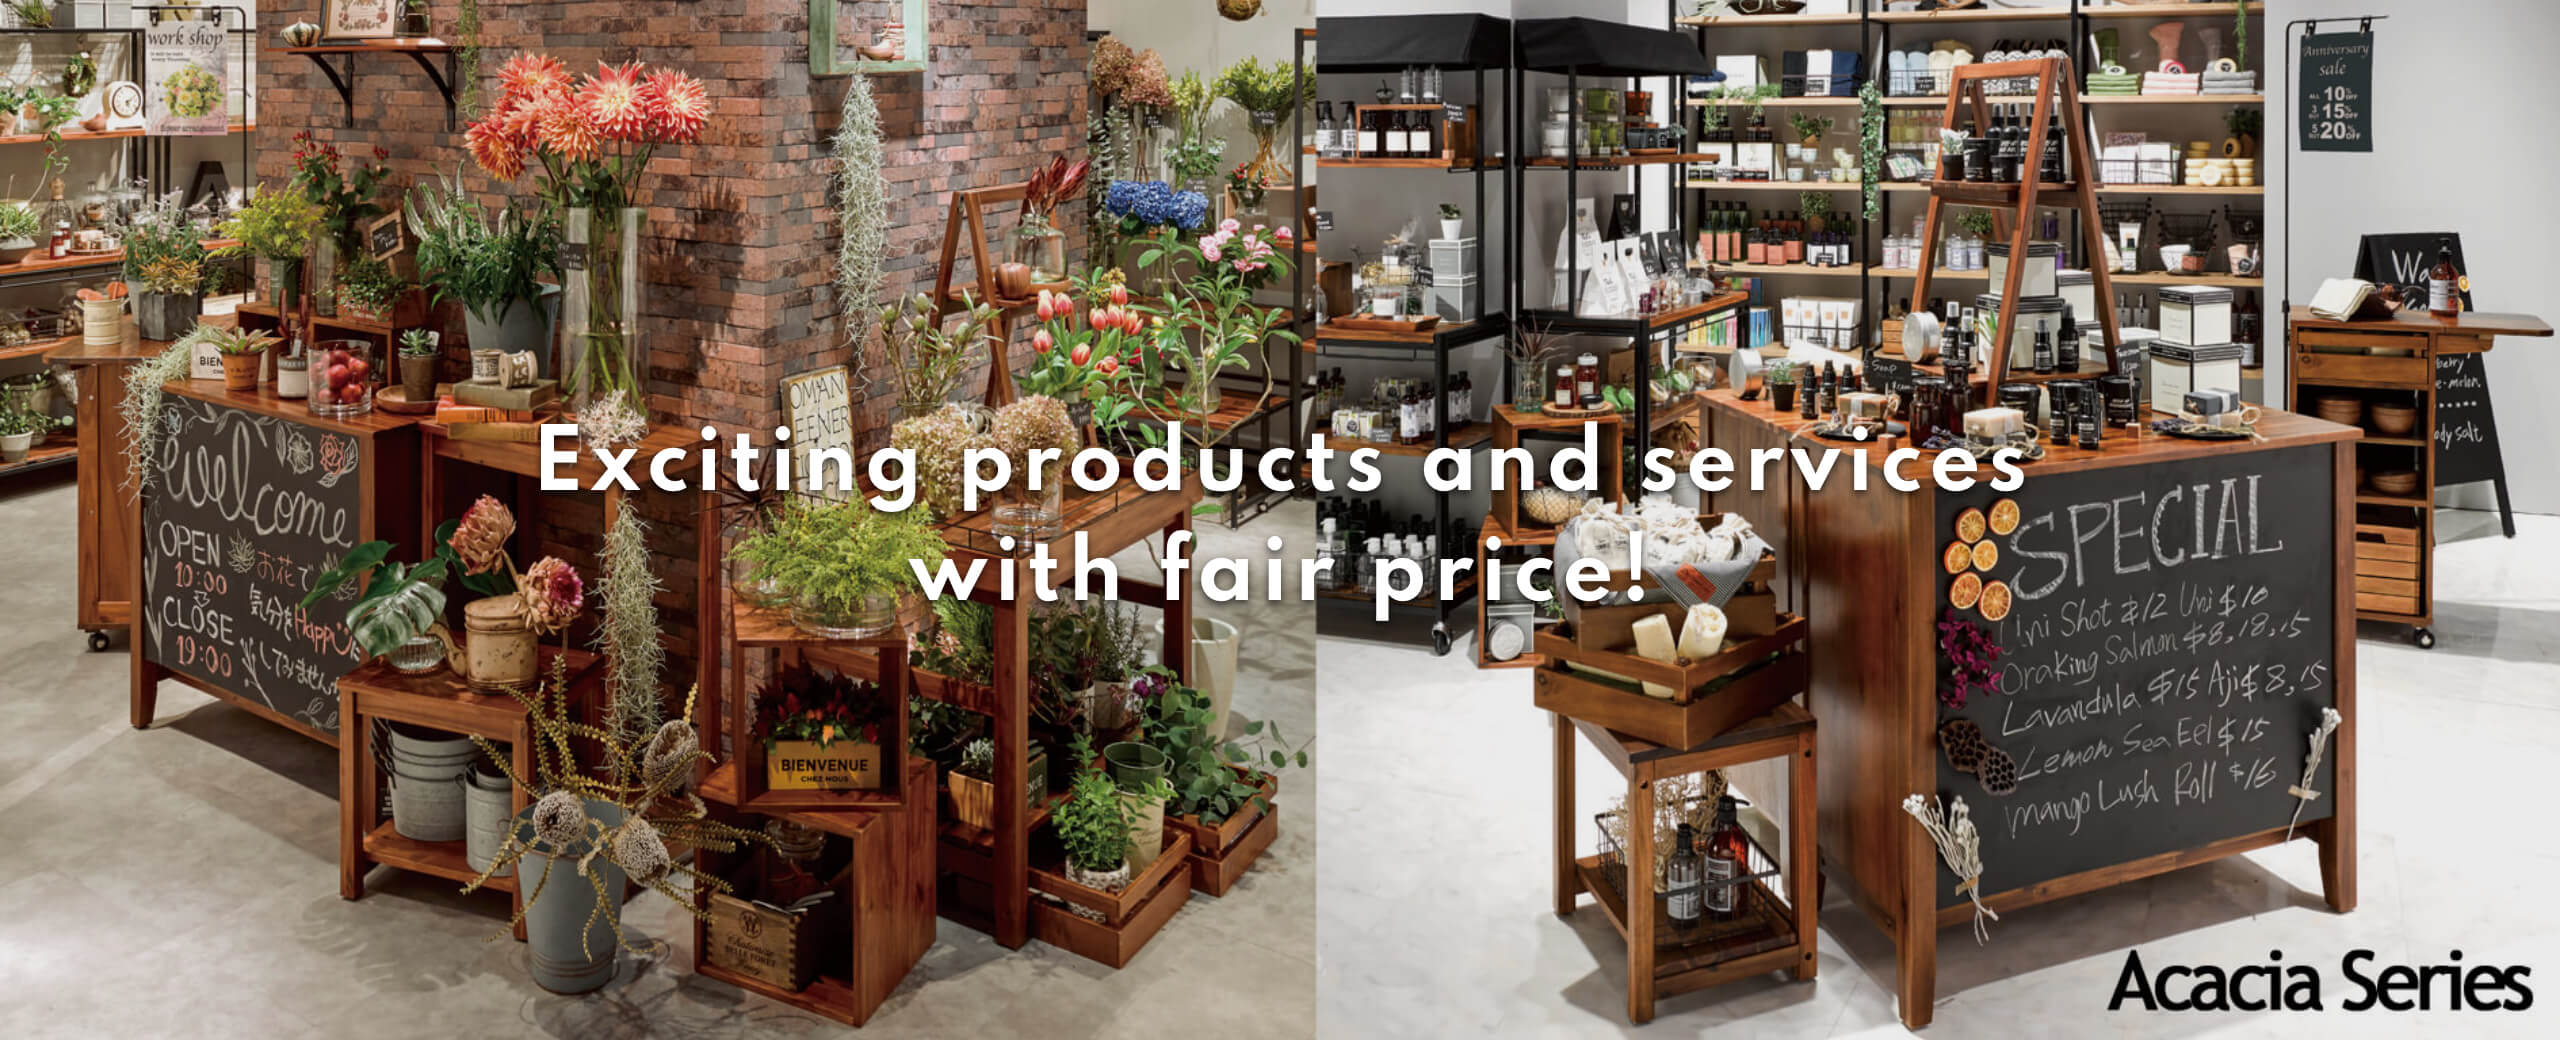 Exciting products and services with fair price!